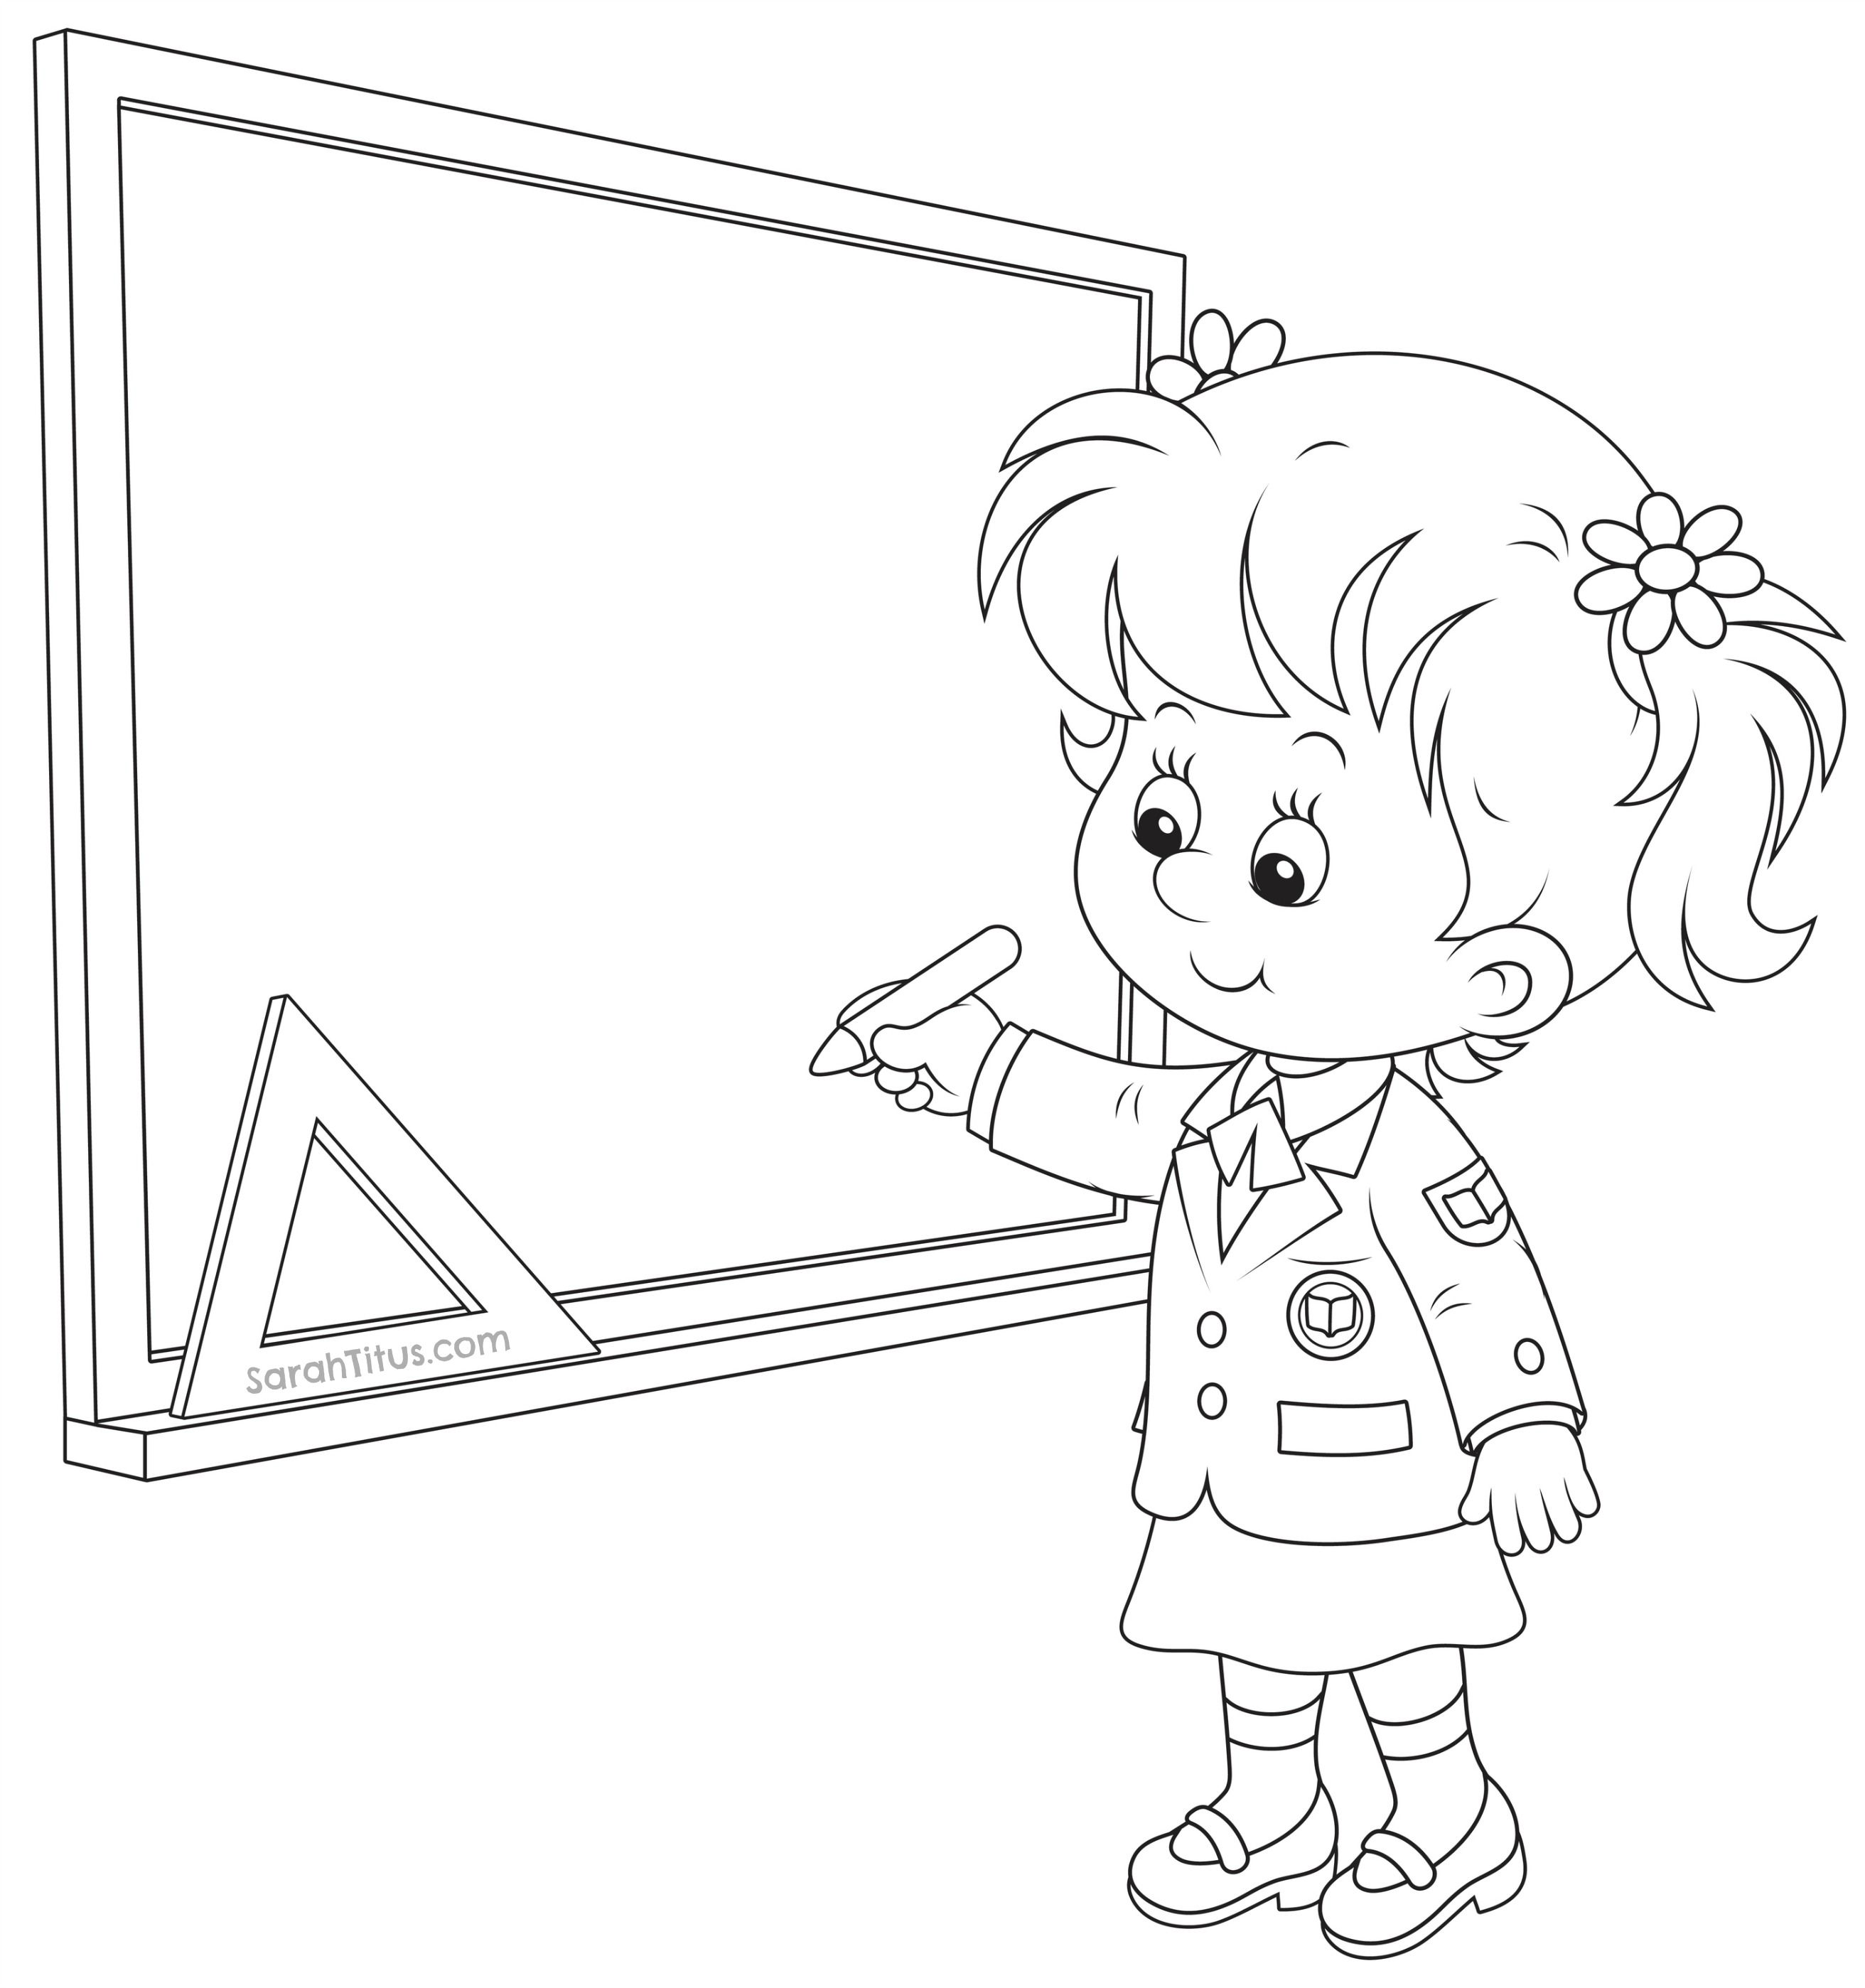 Back to School Coloring Pages   Schulanfang, Schule und Ausmalbilder